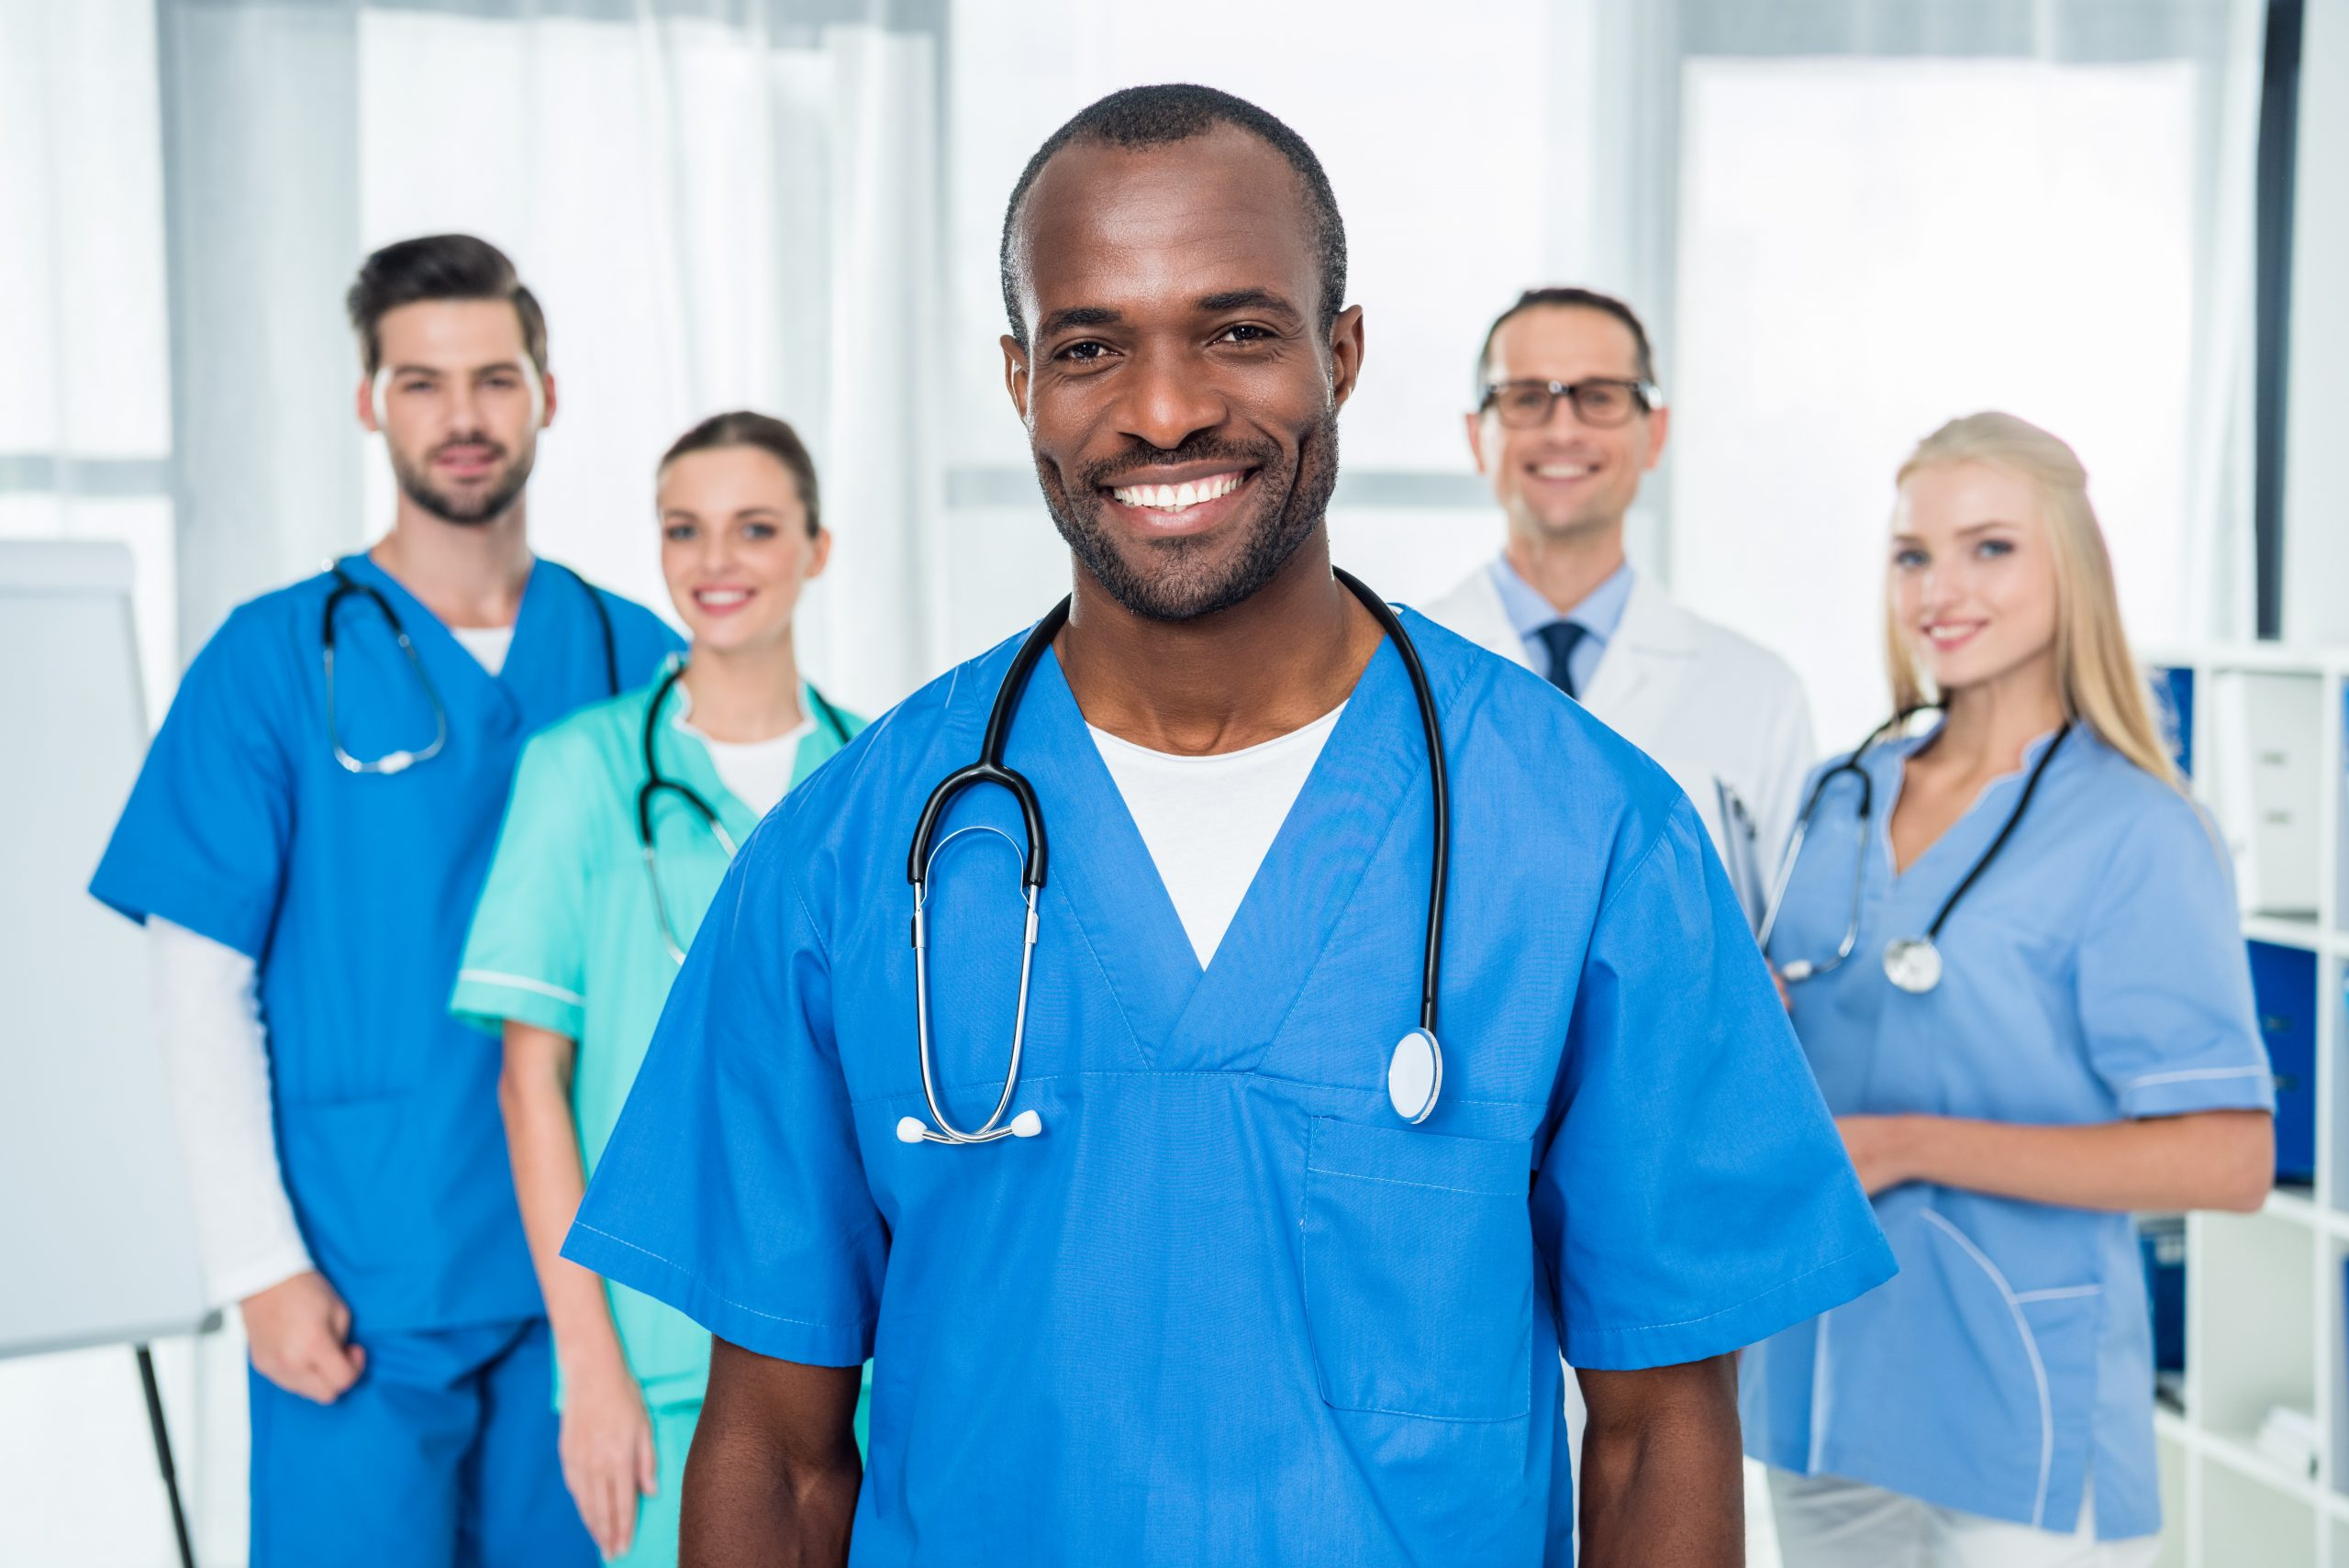 the diversity of healthcare professionals: nurses of many different cultures